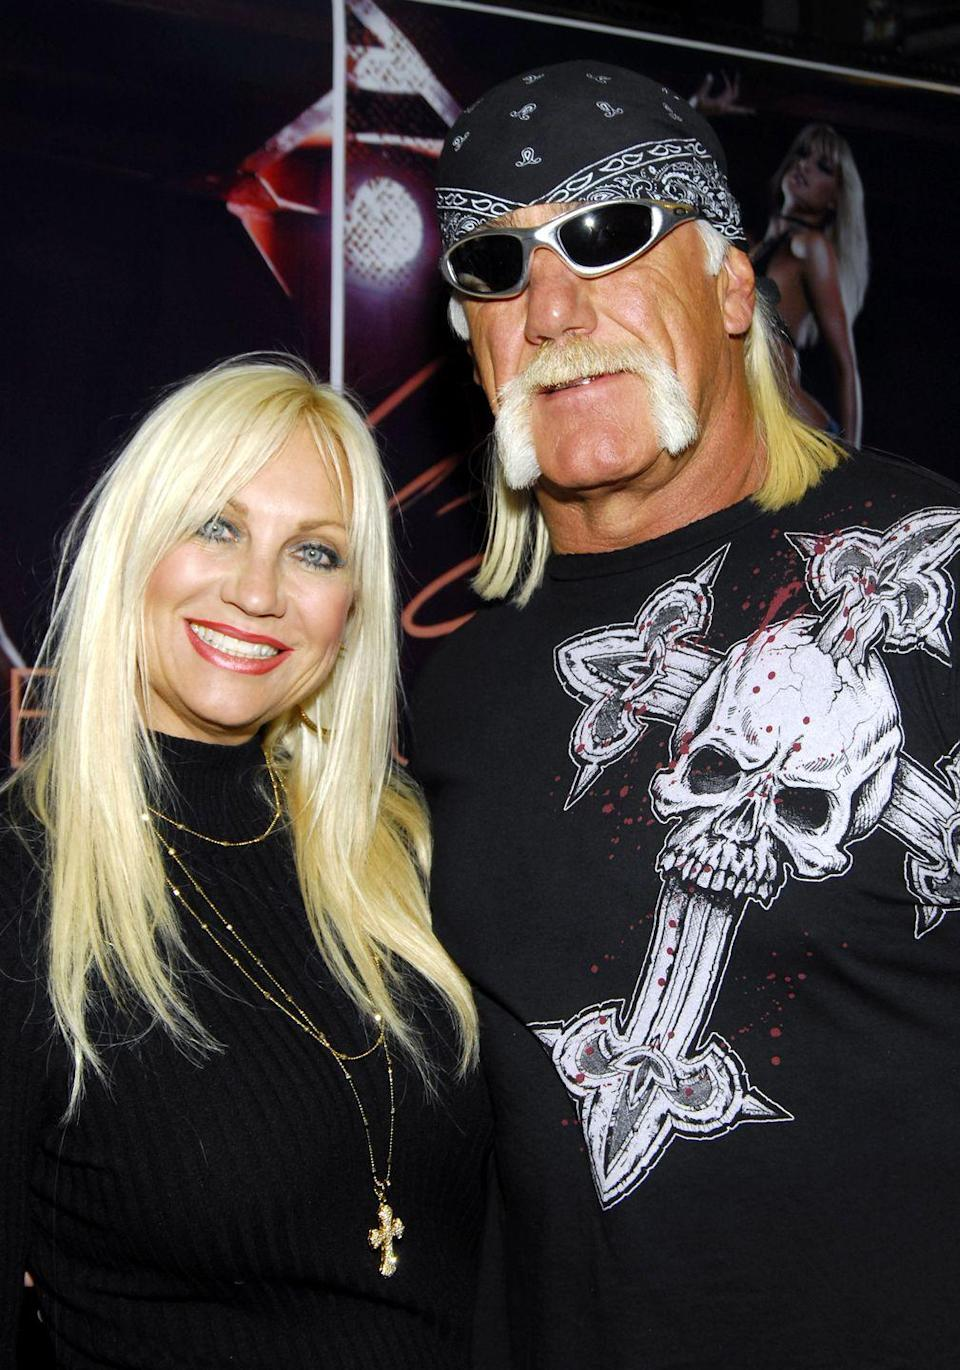 "<p>The professional wrestler's wife, Linda Claridge, divorced him after finding out about Hogan's relations with Christiane Plante. Claridge walked out of the marriage with <a href=""https://www.marieclaire.com/culture/g19123551/most-expensive-celebrity-divorce-settlements/?slide=12"" rel=""nofollow noopener"" target=""_blank"" data-ylk=""slk:$30 million"" class=""link rapid-noclick-resp"">$30 million</a>.</p>"